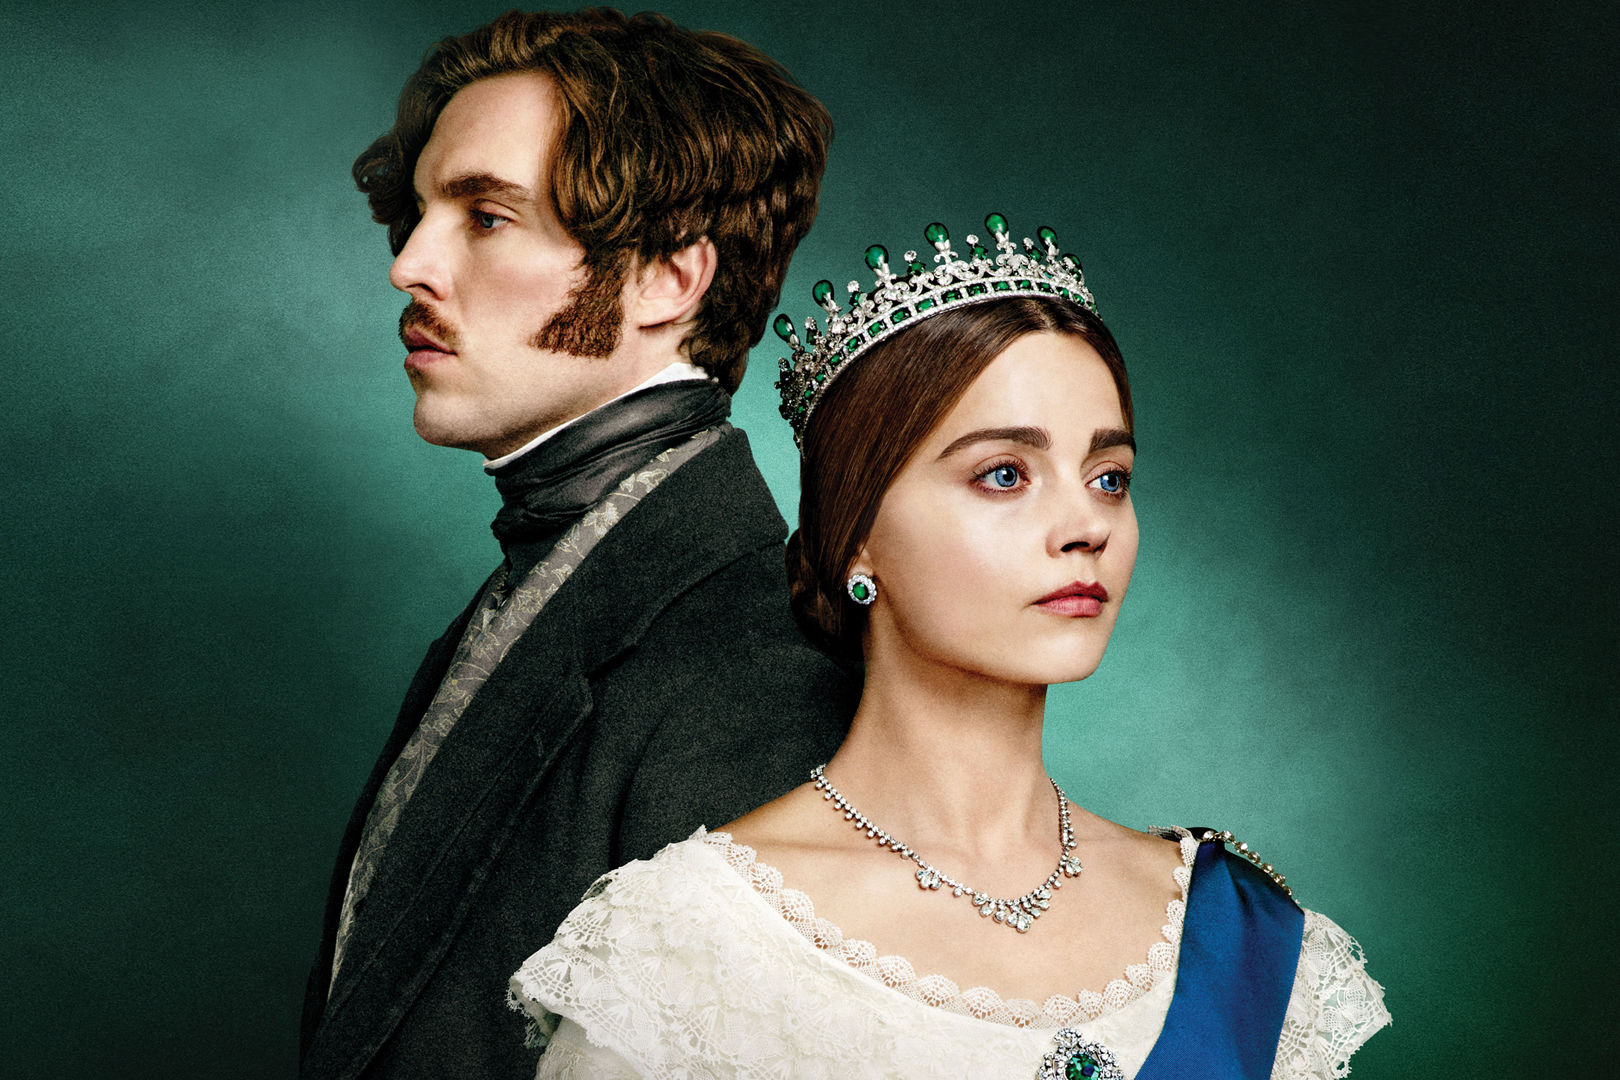 'Victoria' Season 3 Will Arrive on Amazon Prime Video in September